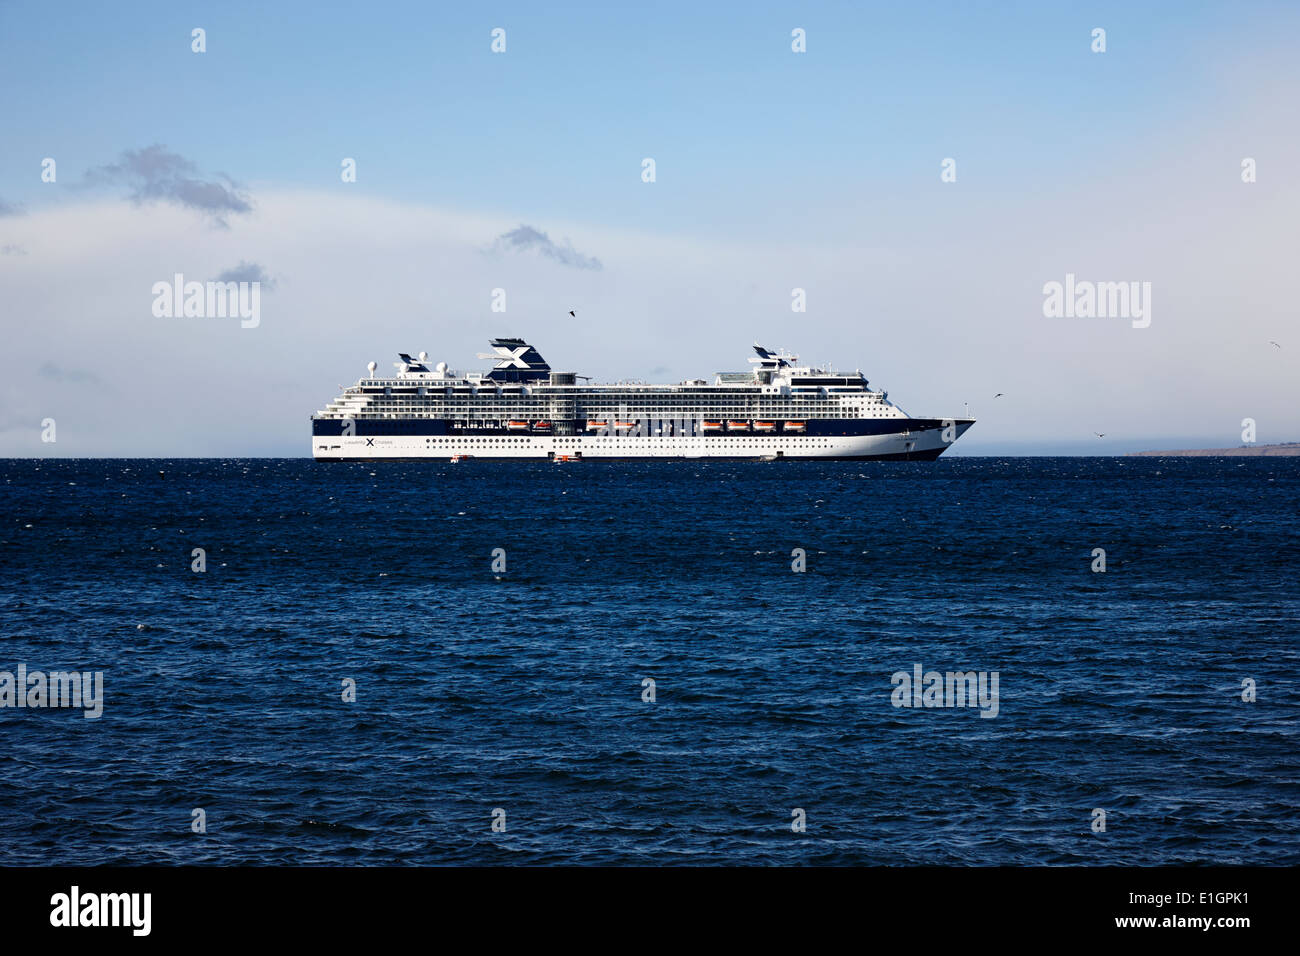 large celebrity infinity cruises cruise ship anchored offshore in shallow water port Punta Arenas Chile - Stock Image